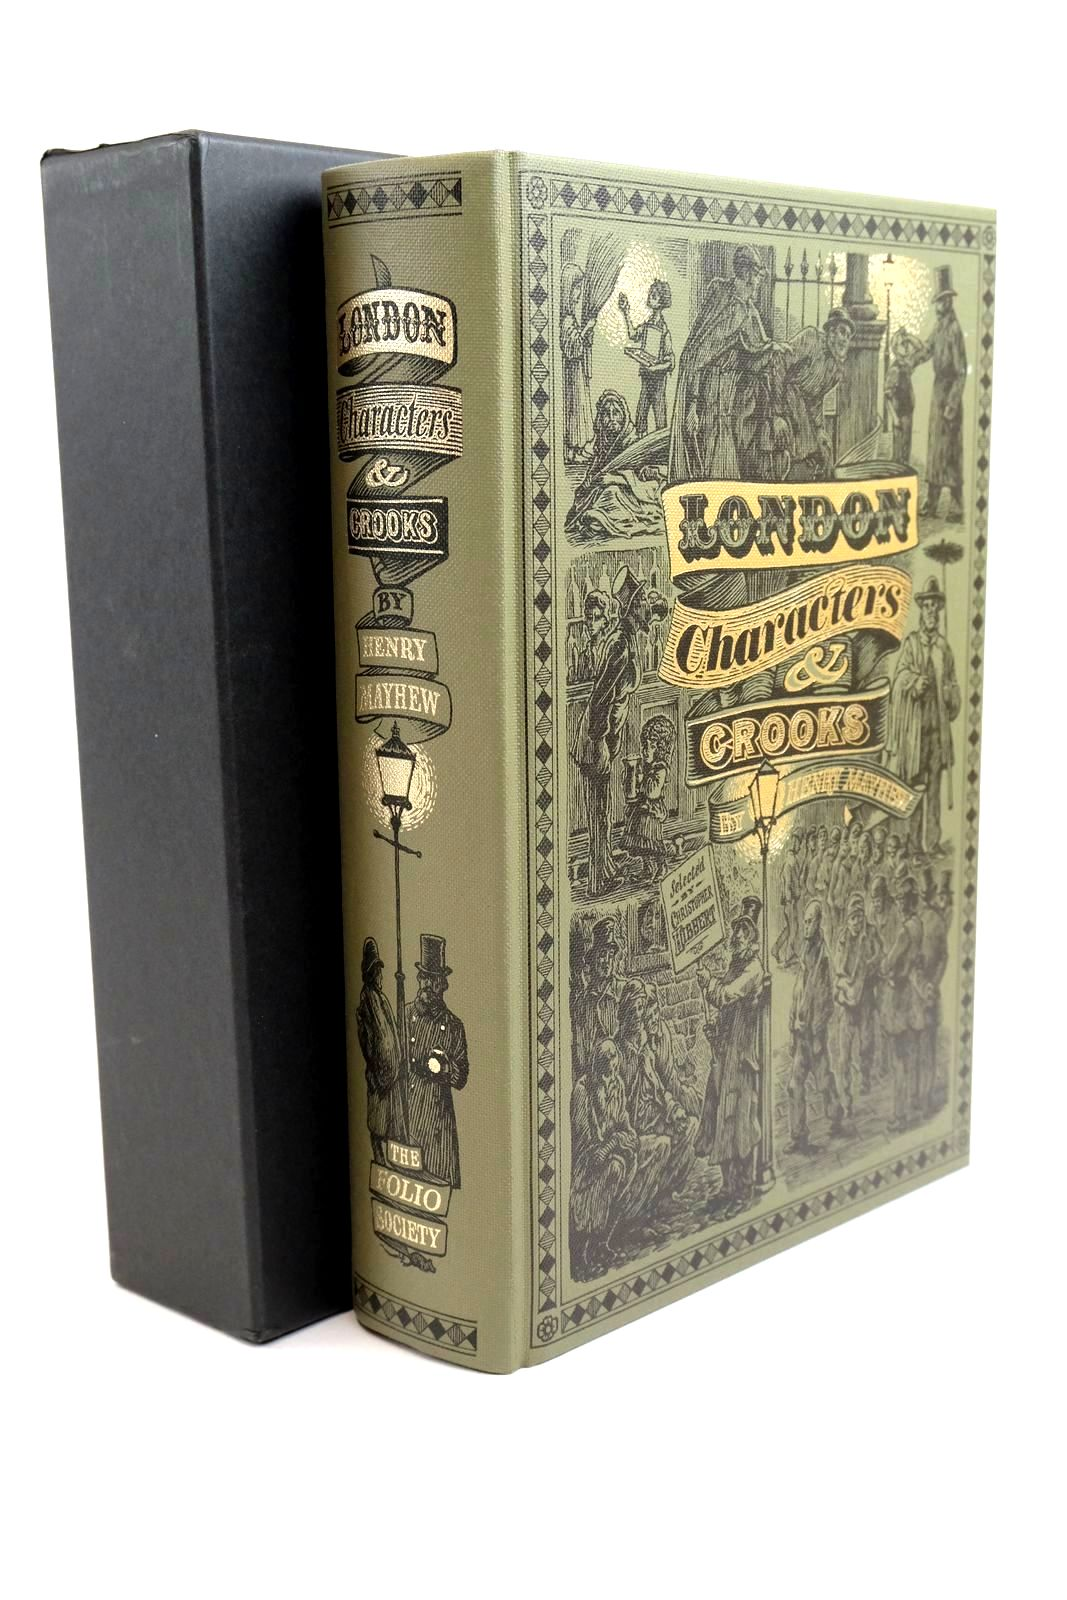 Photo of LONDON CHARACTERS AND CROOKS written by Mayhew, Henry Hibbert, Christopher published by Folio Society (STOCK CODE: 1321340)  for sale by Stella & Rose's Books